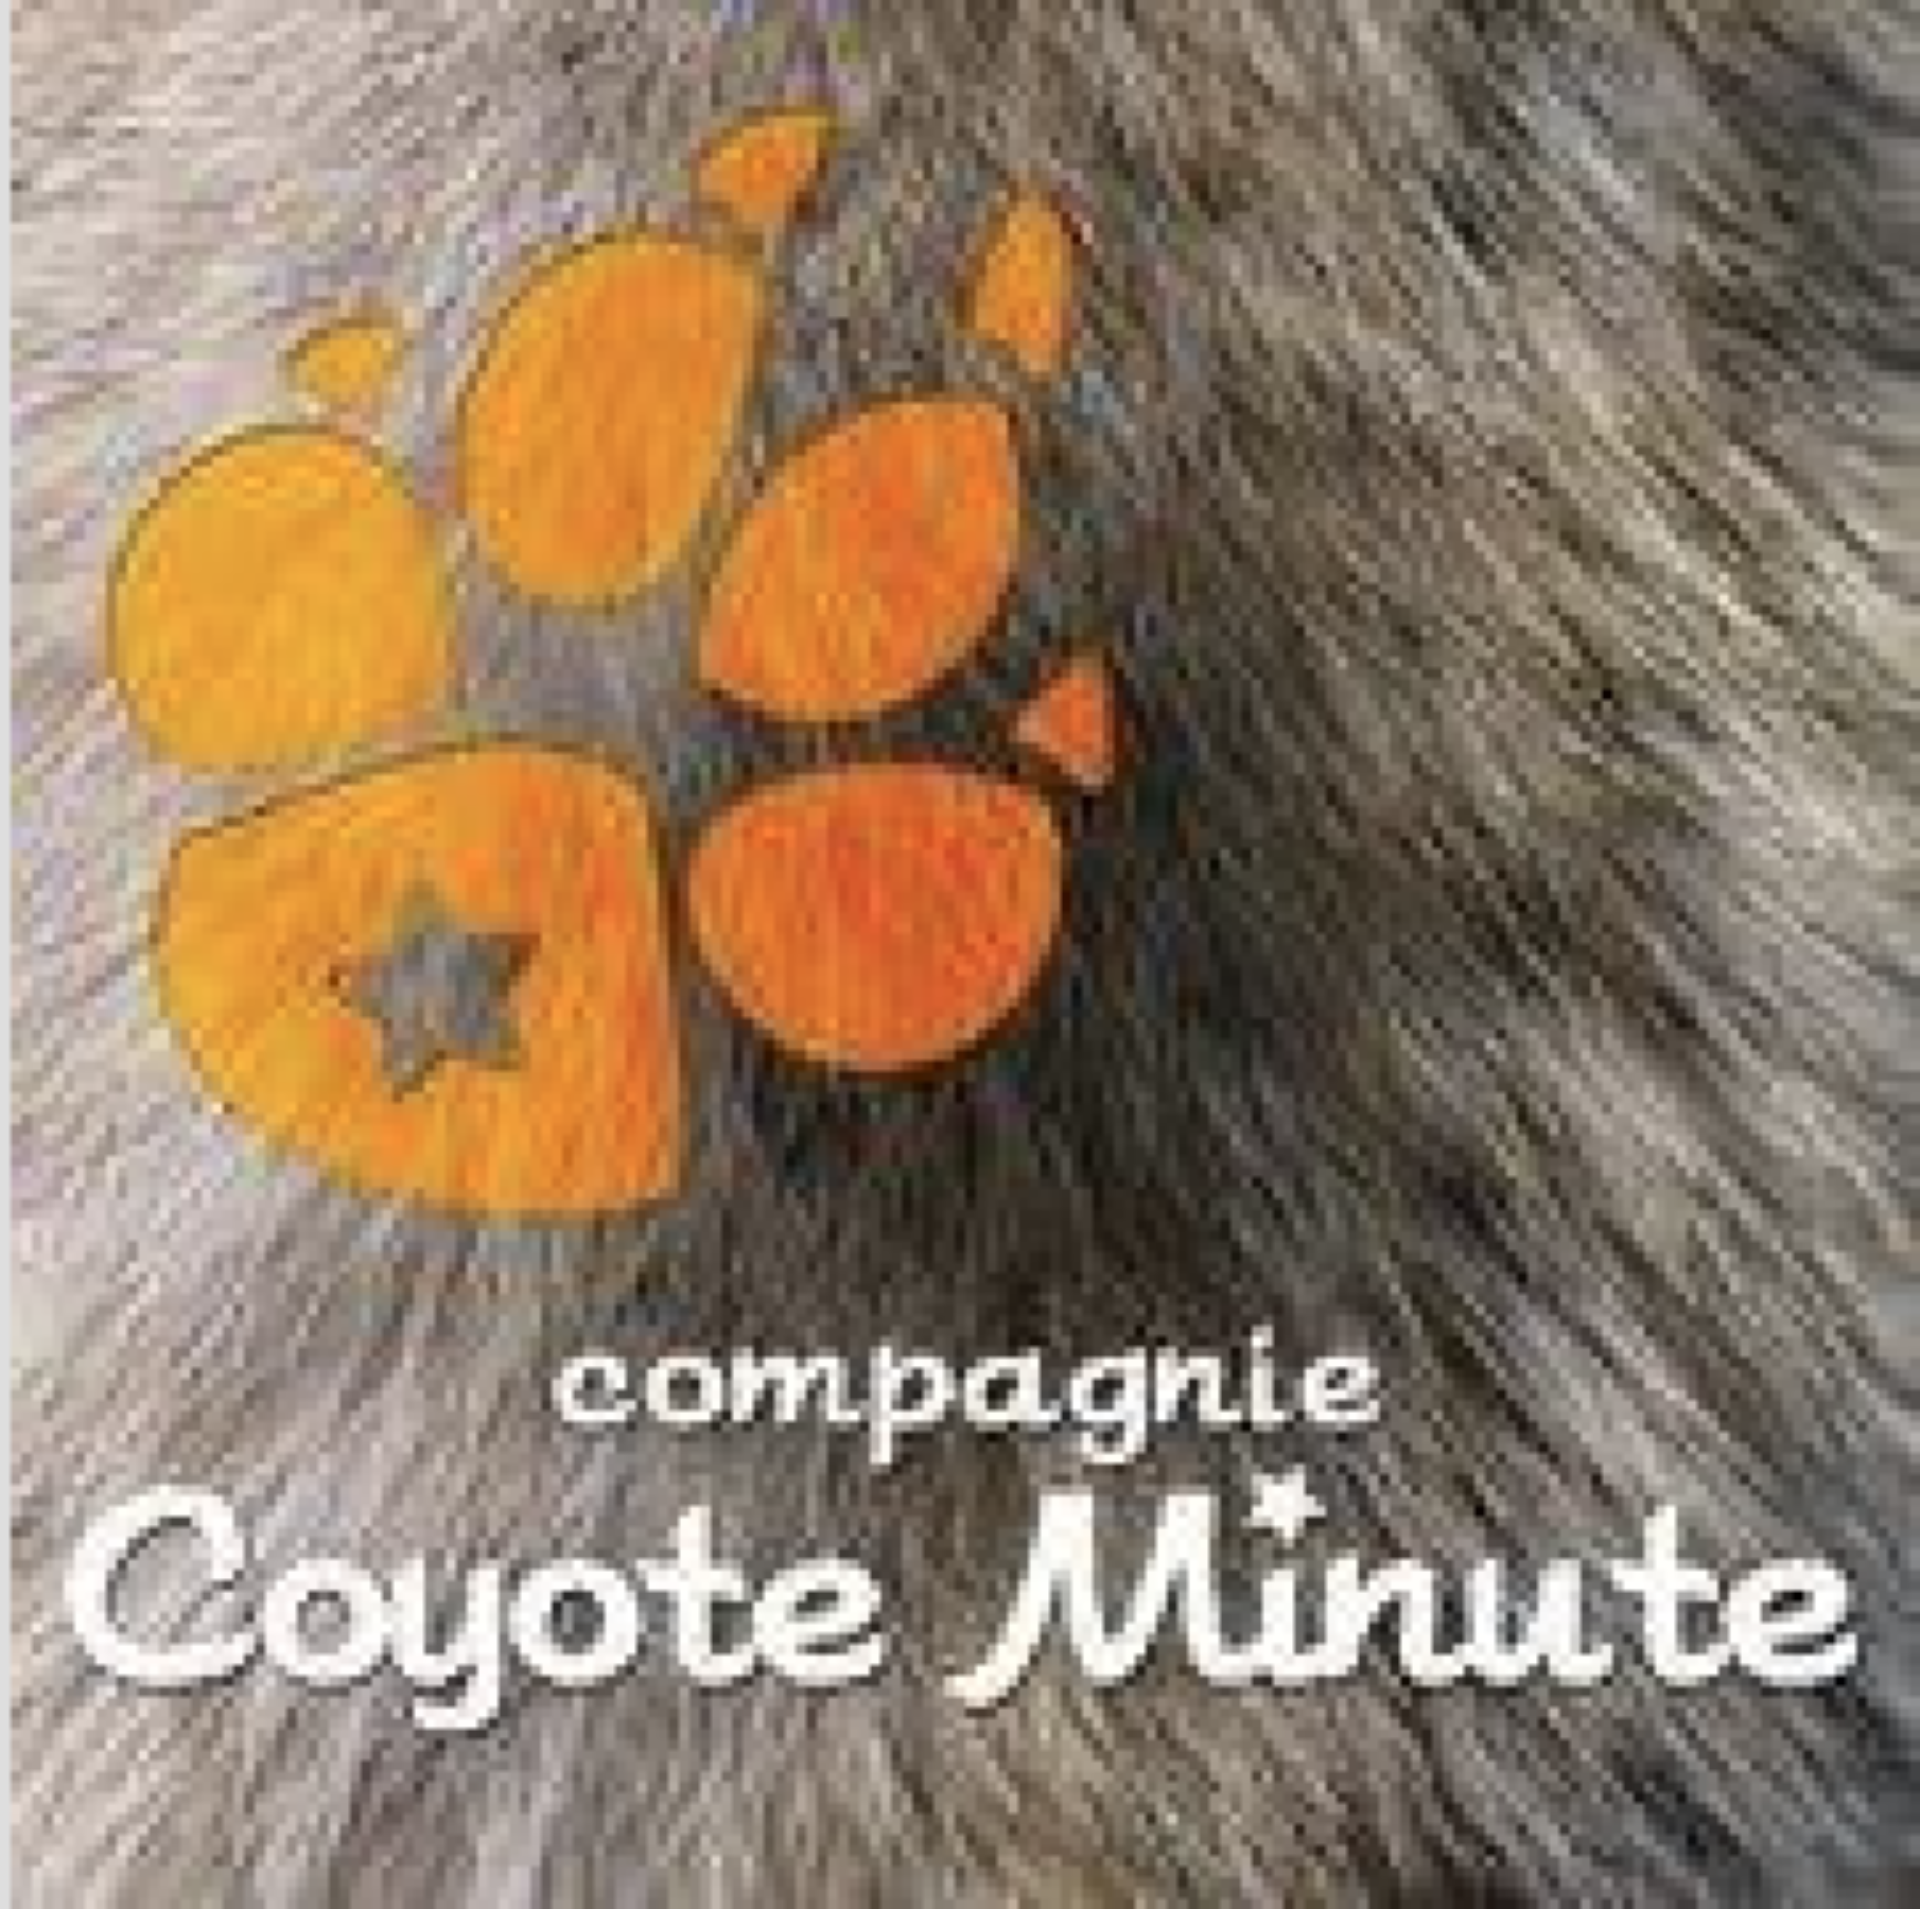 Compagnie Coyote Minute